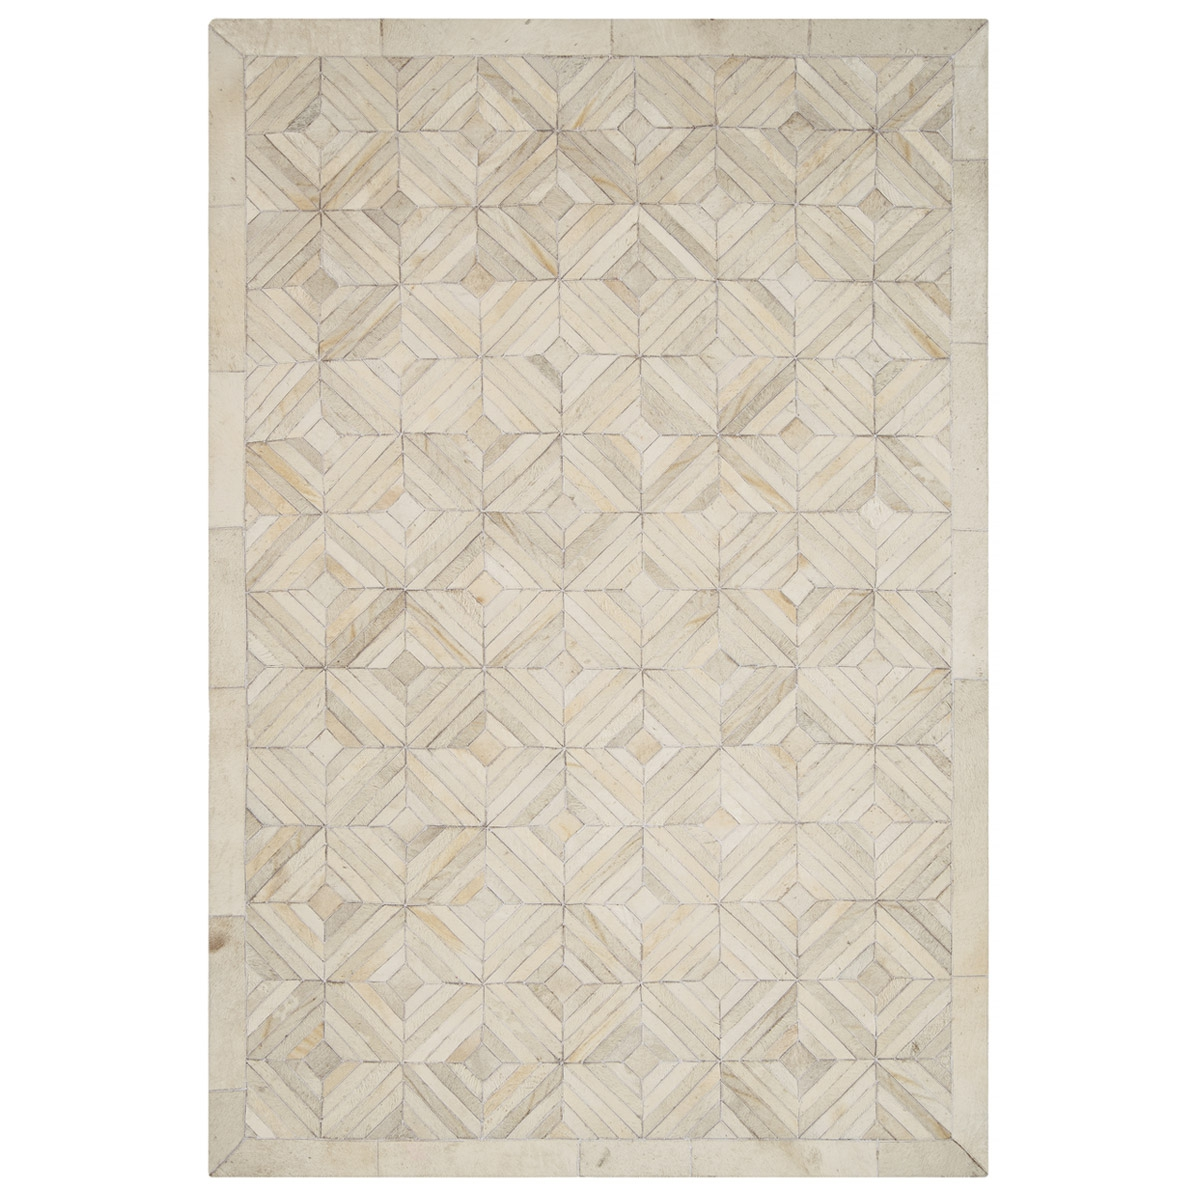 tapis imitation peau peau de bte blanc large choix de produits dcouvrir with tapis imitation. Black Bedroom Furniture Sets. Home Design Ideas